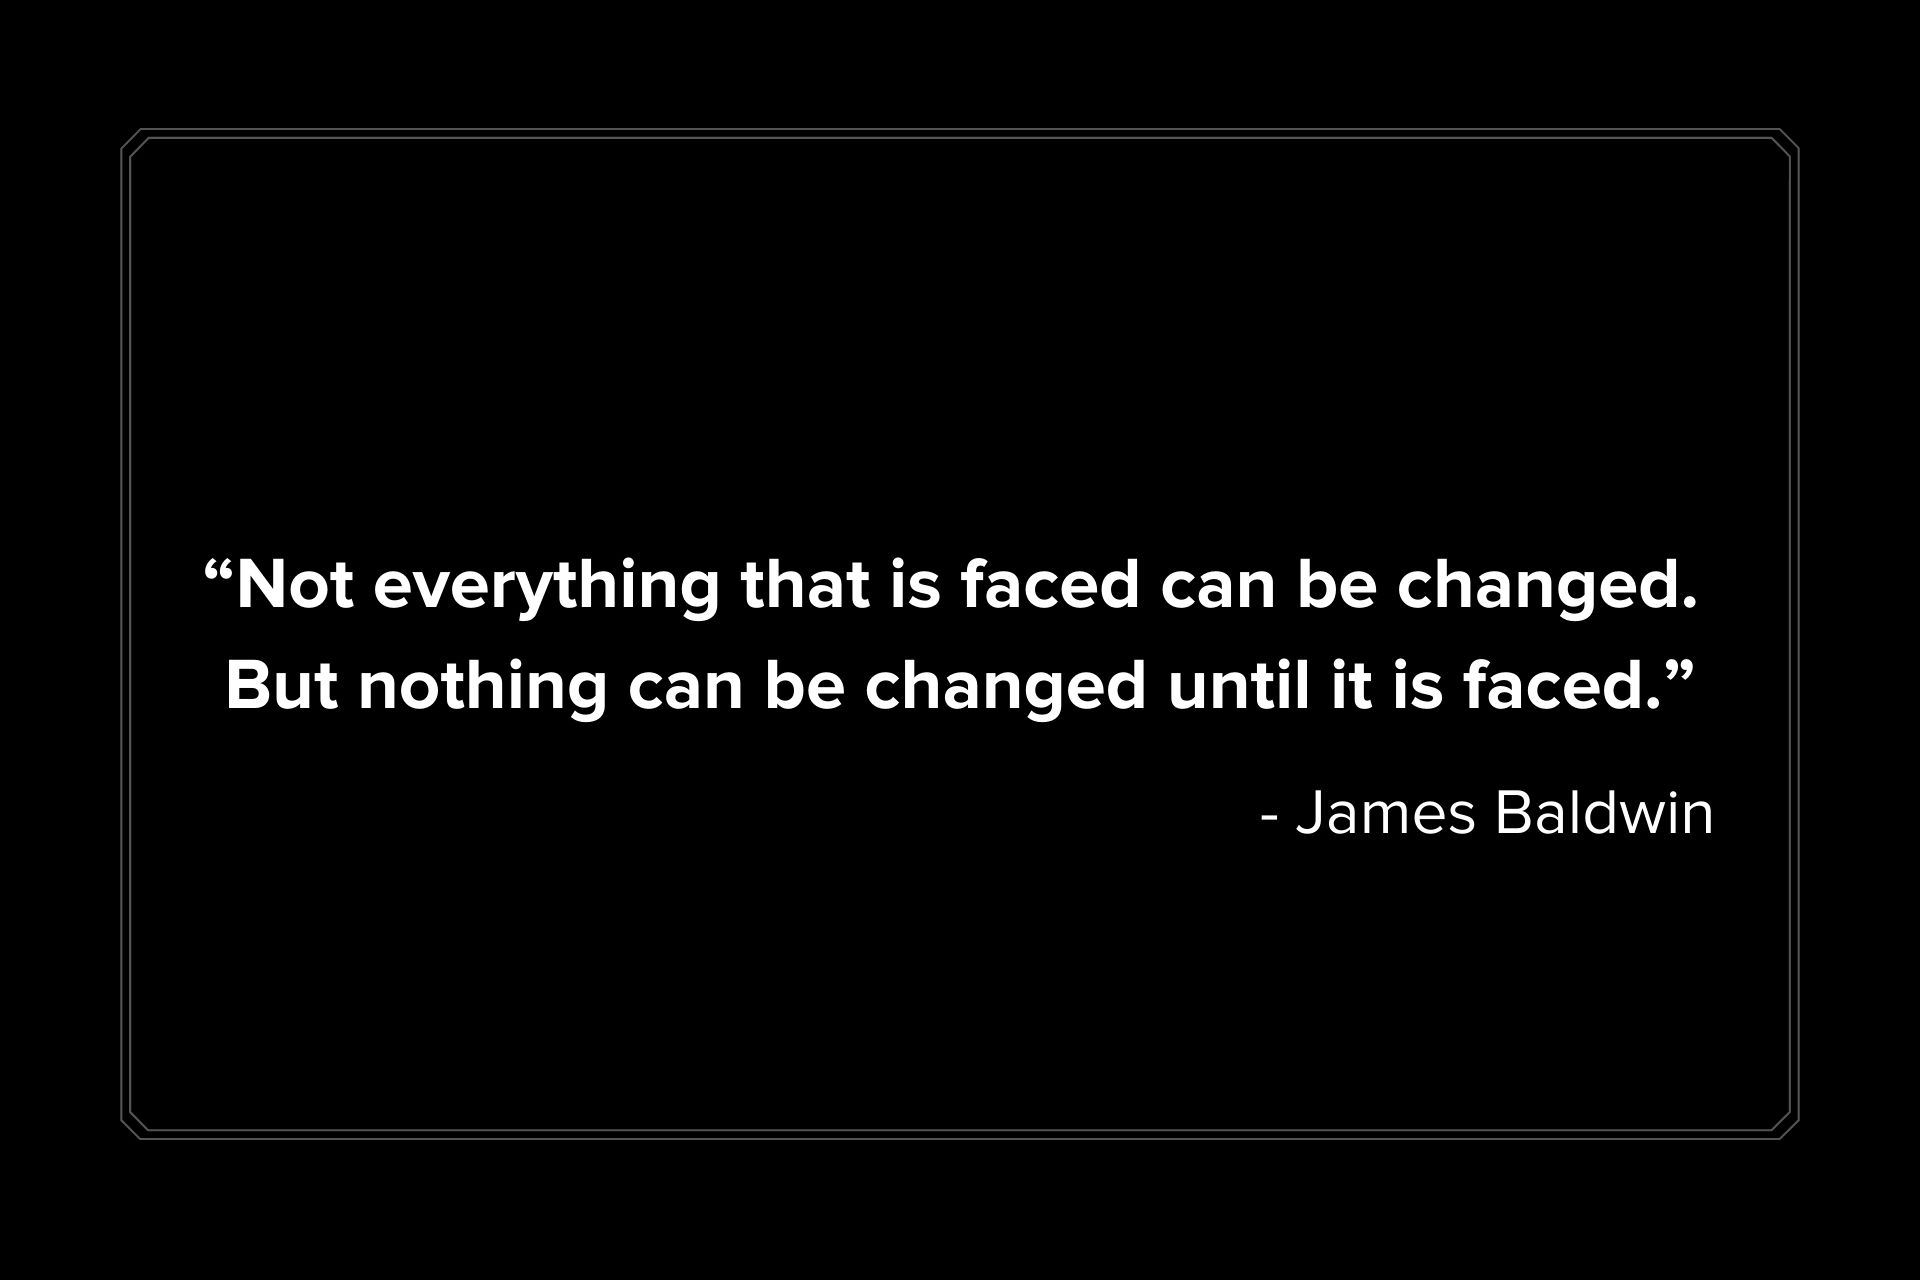 """Not everything that is faced can be changed. But nothing can be changed until it is faced."" James Baldwin"